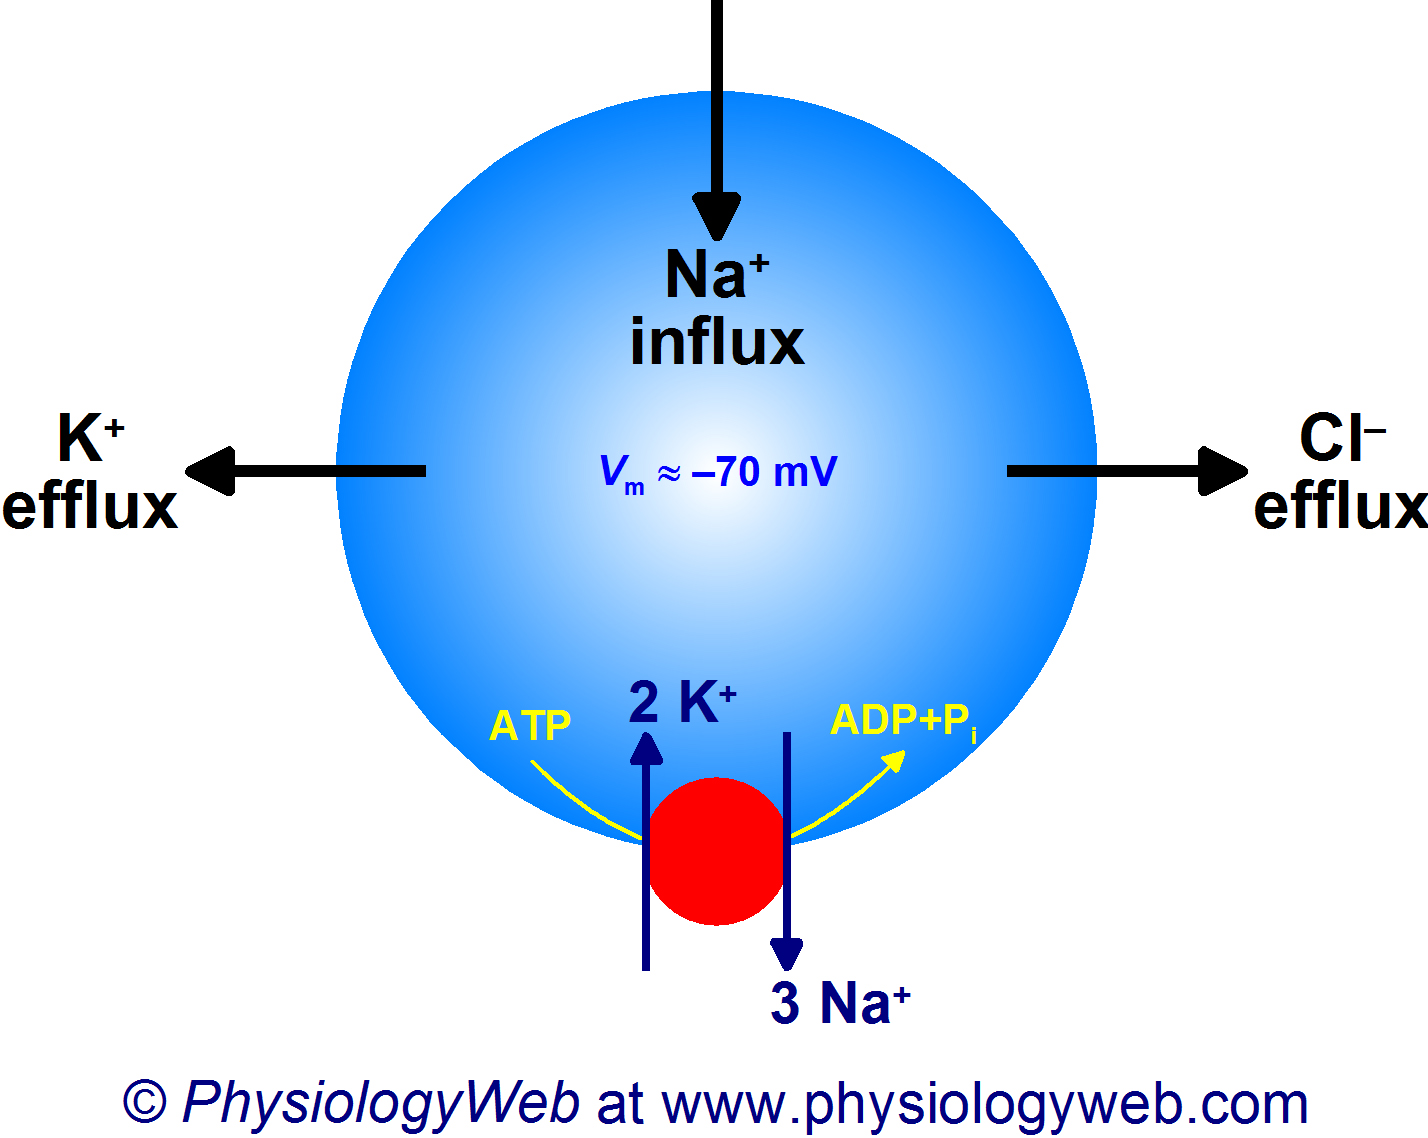 Potassium efflux, sodium influx, and chloride efflux under resting physiological conditions